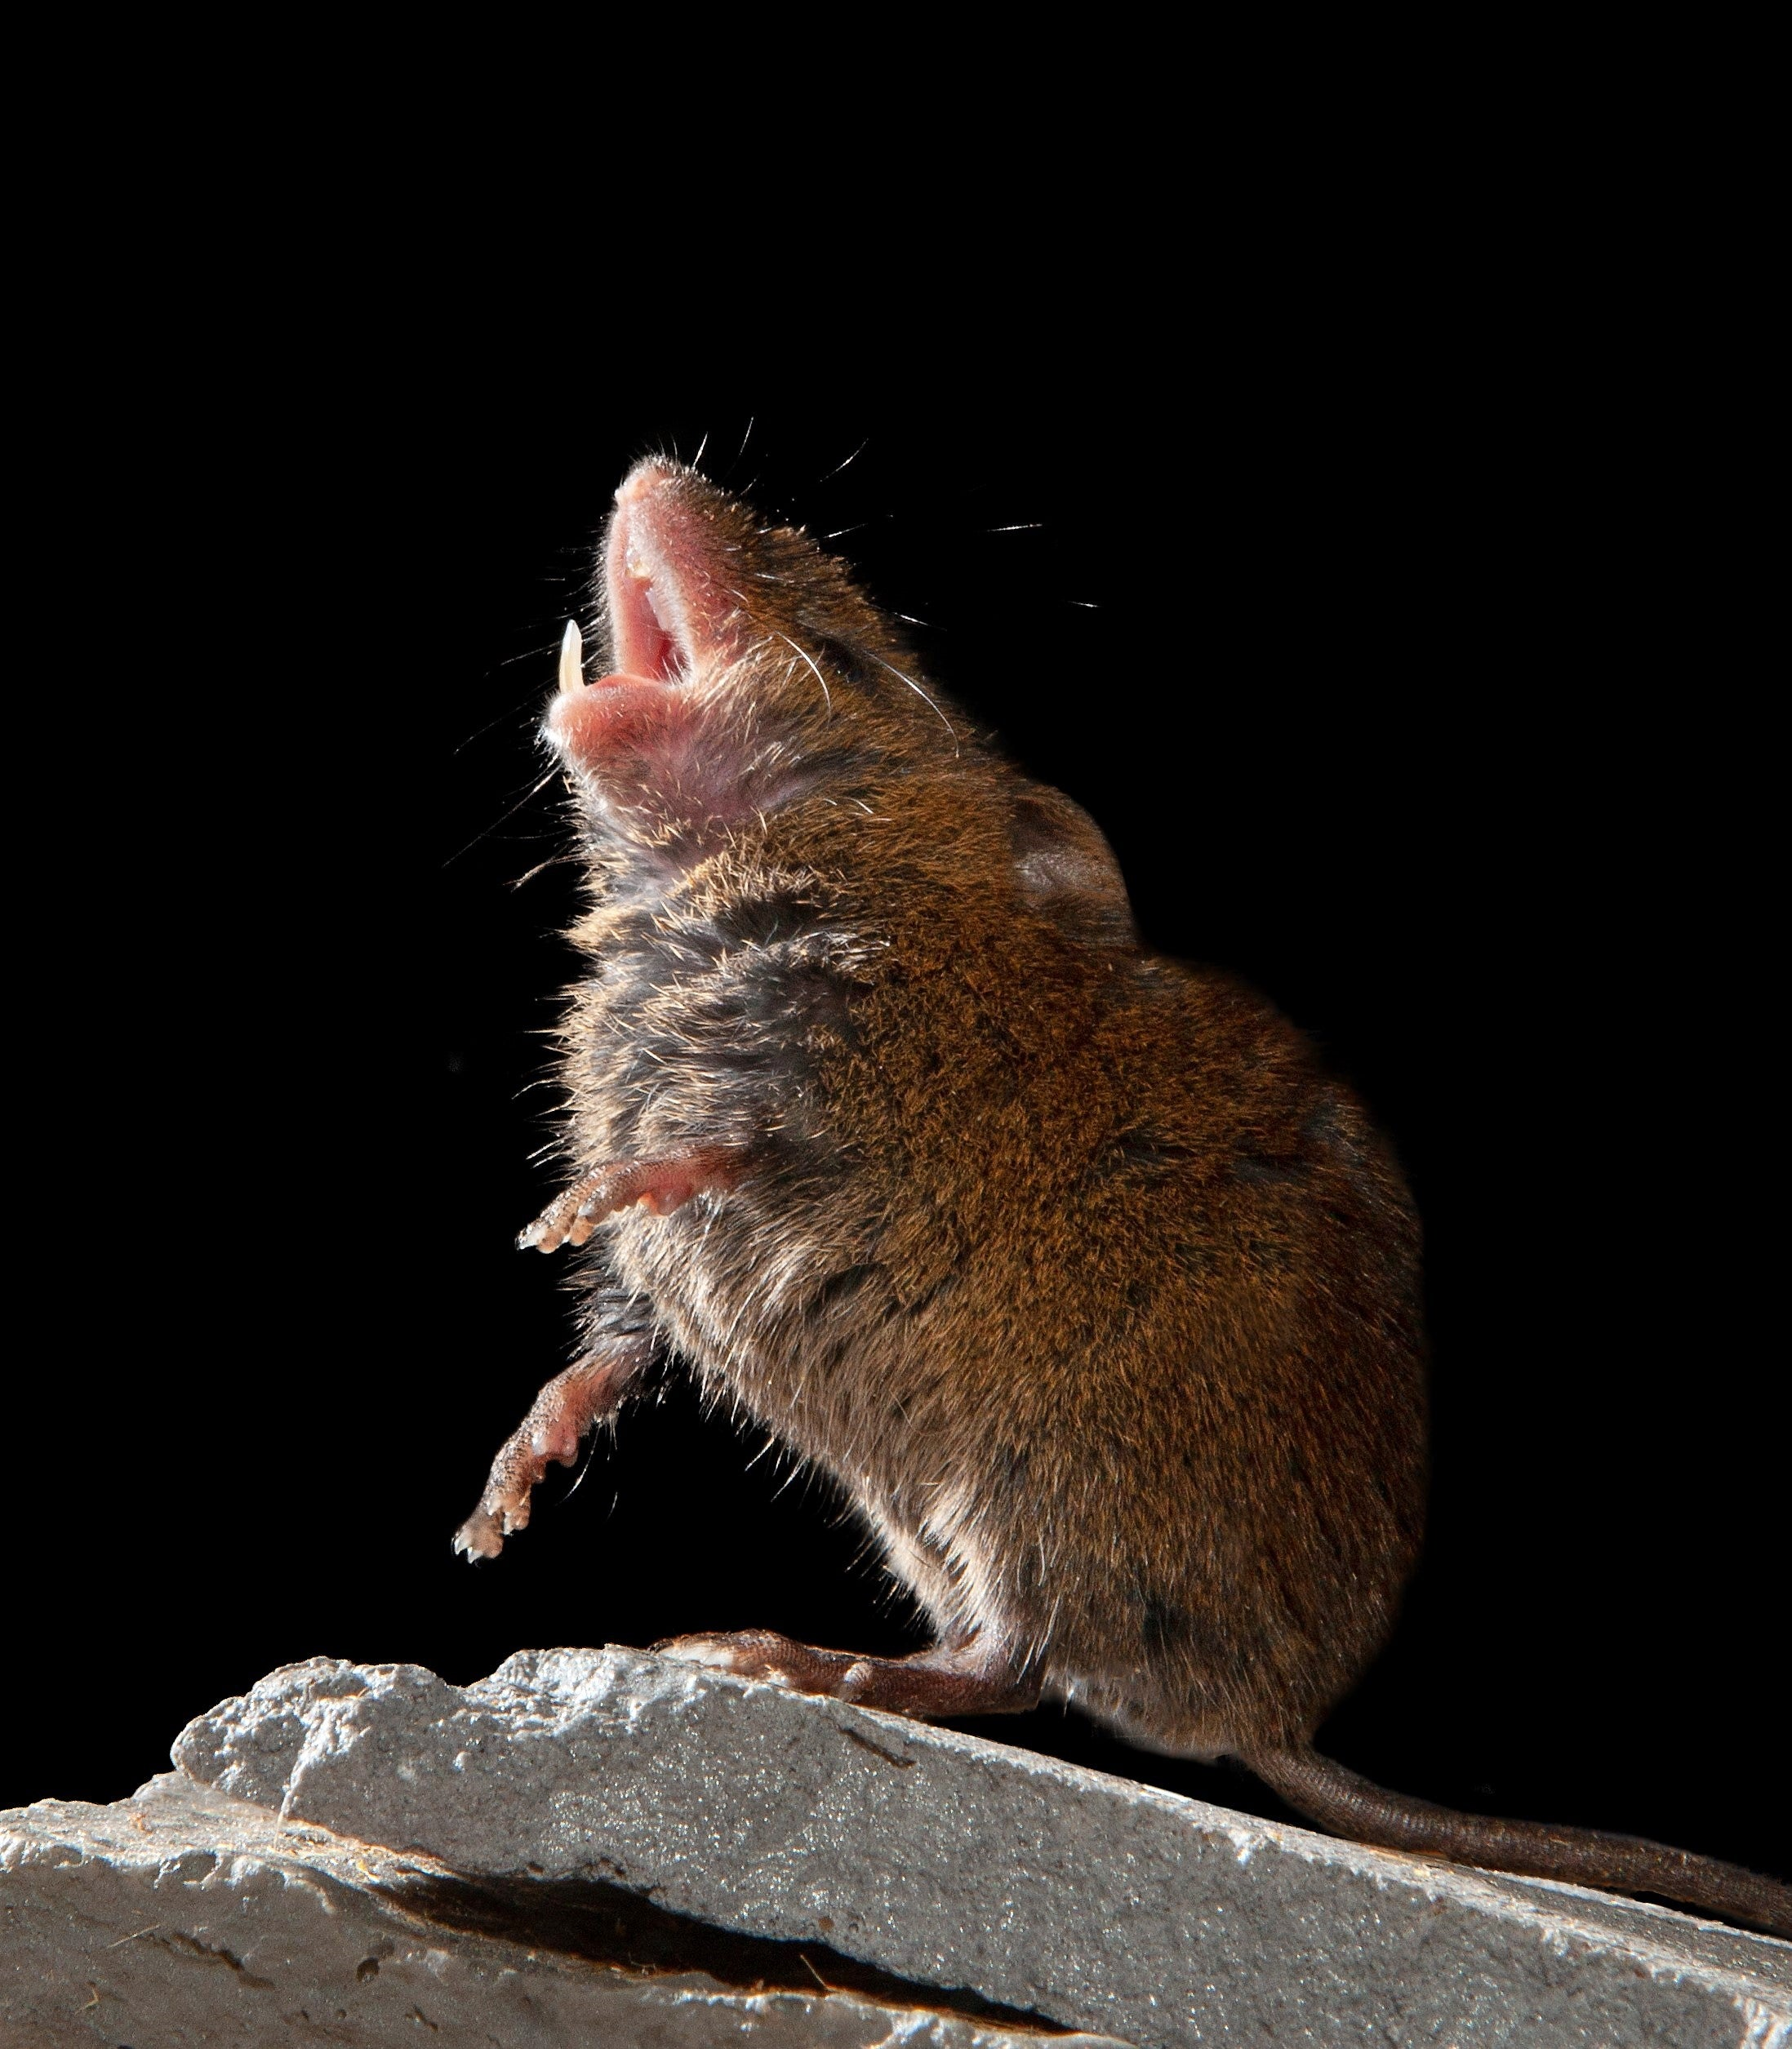 A singing mouse on a rock